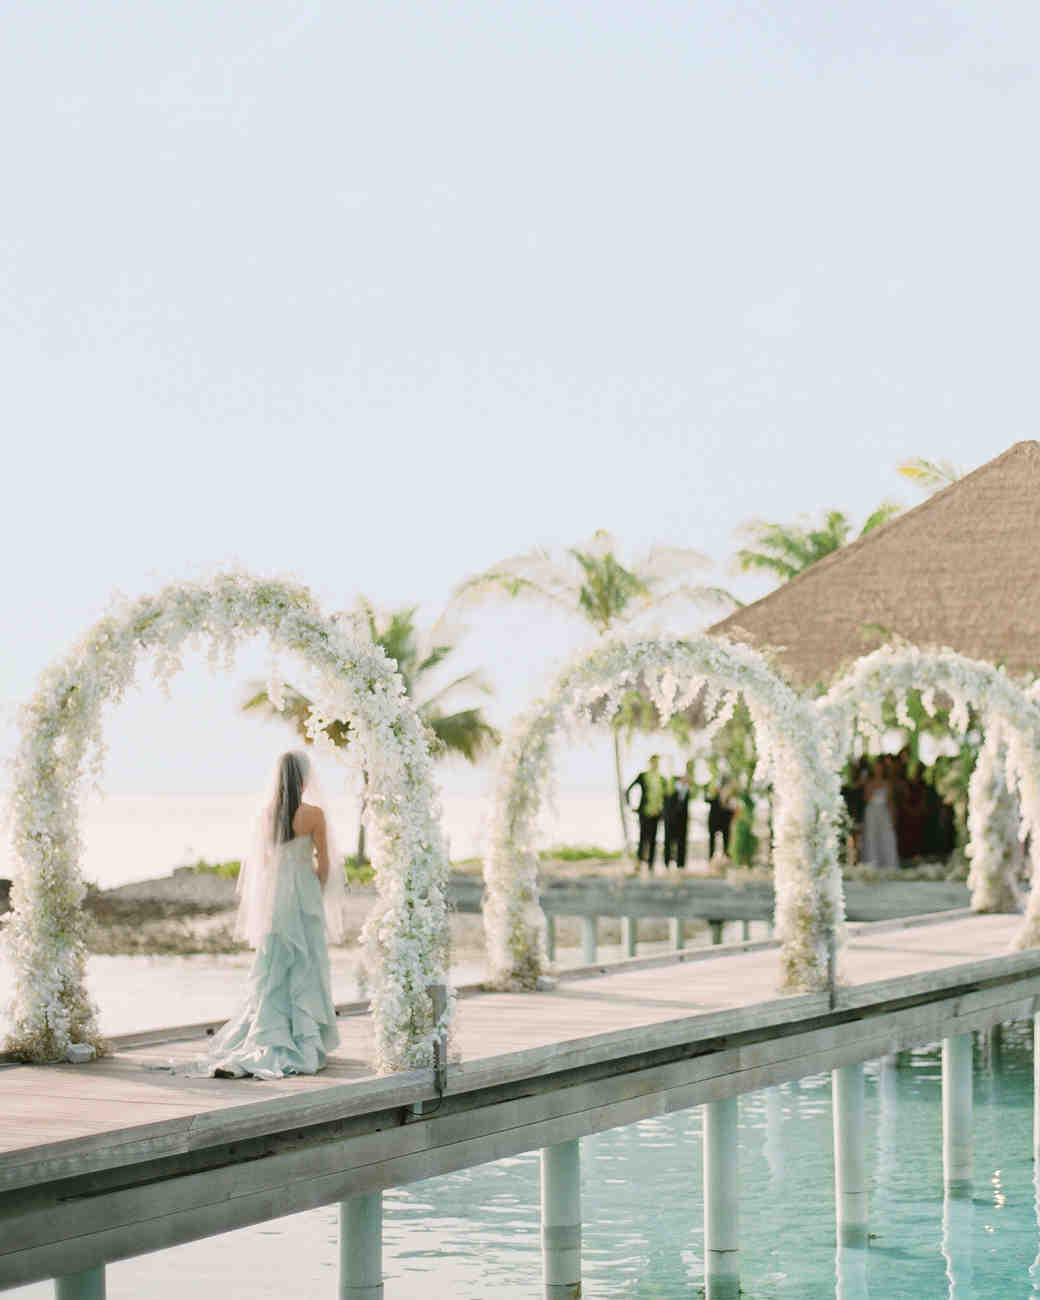 Boardwalk Ceremony Aisle with White Arches